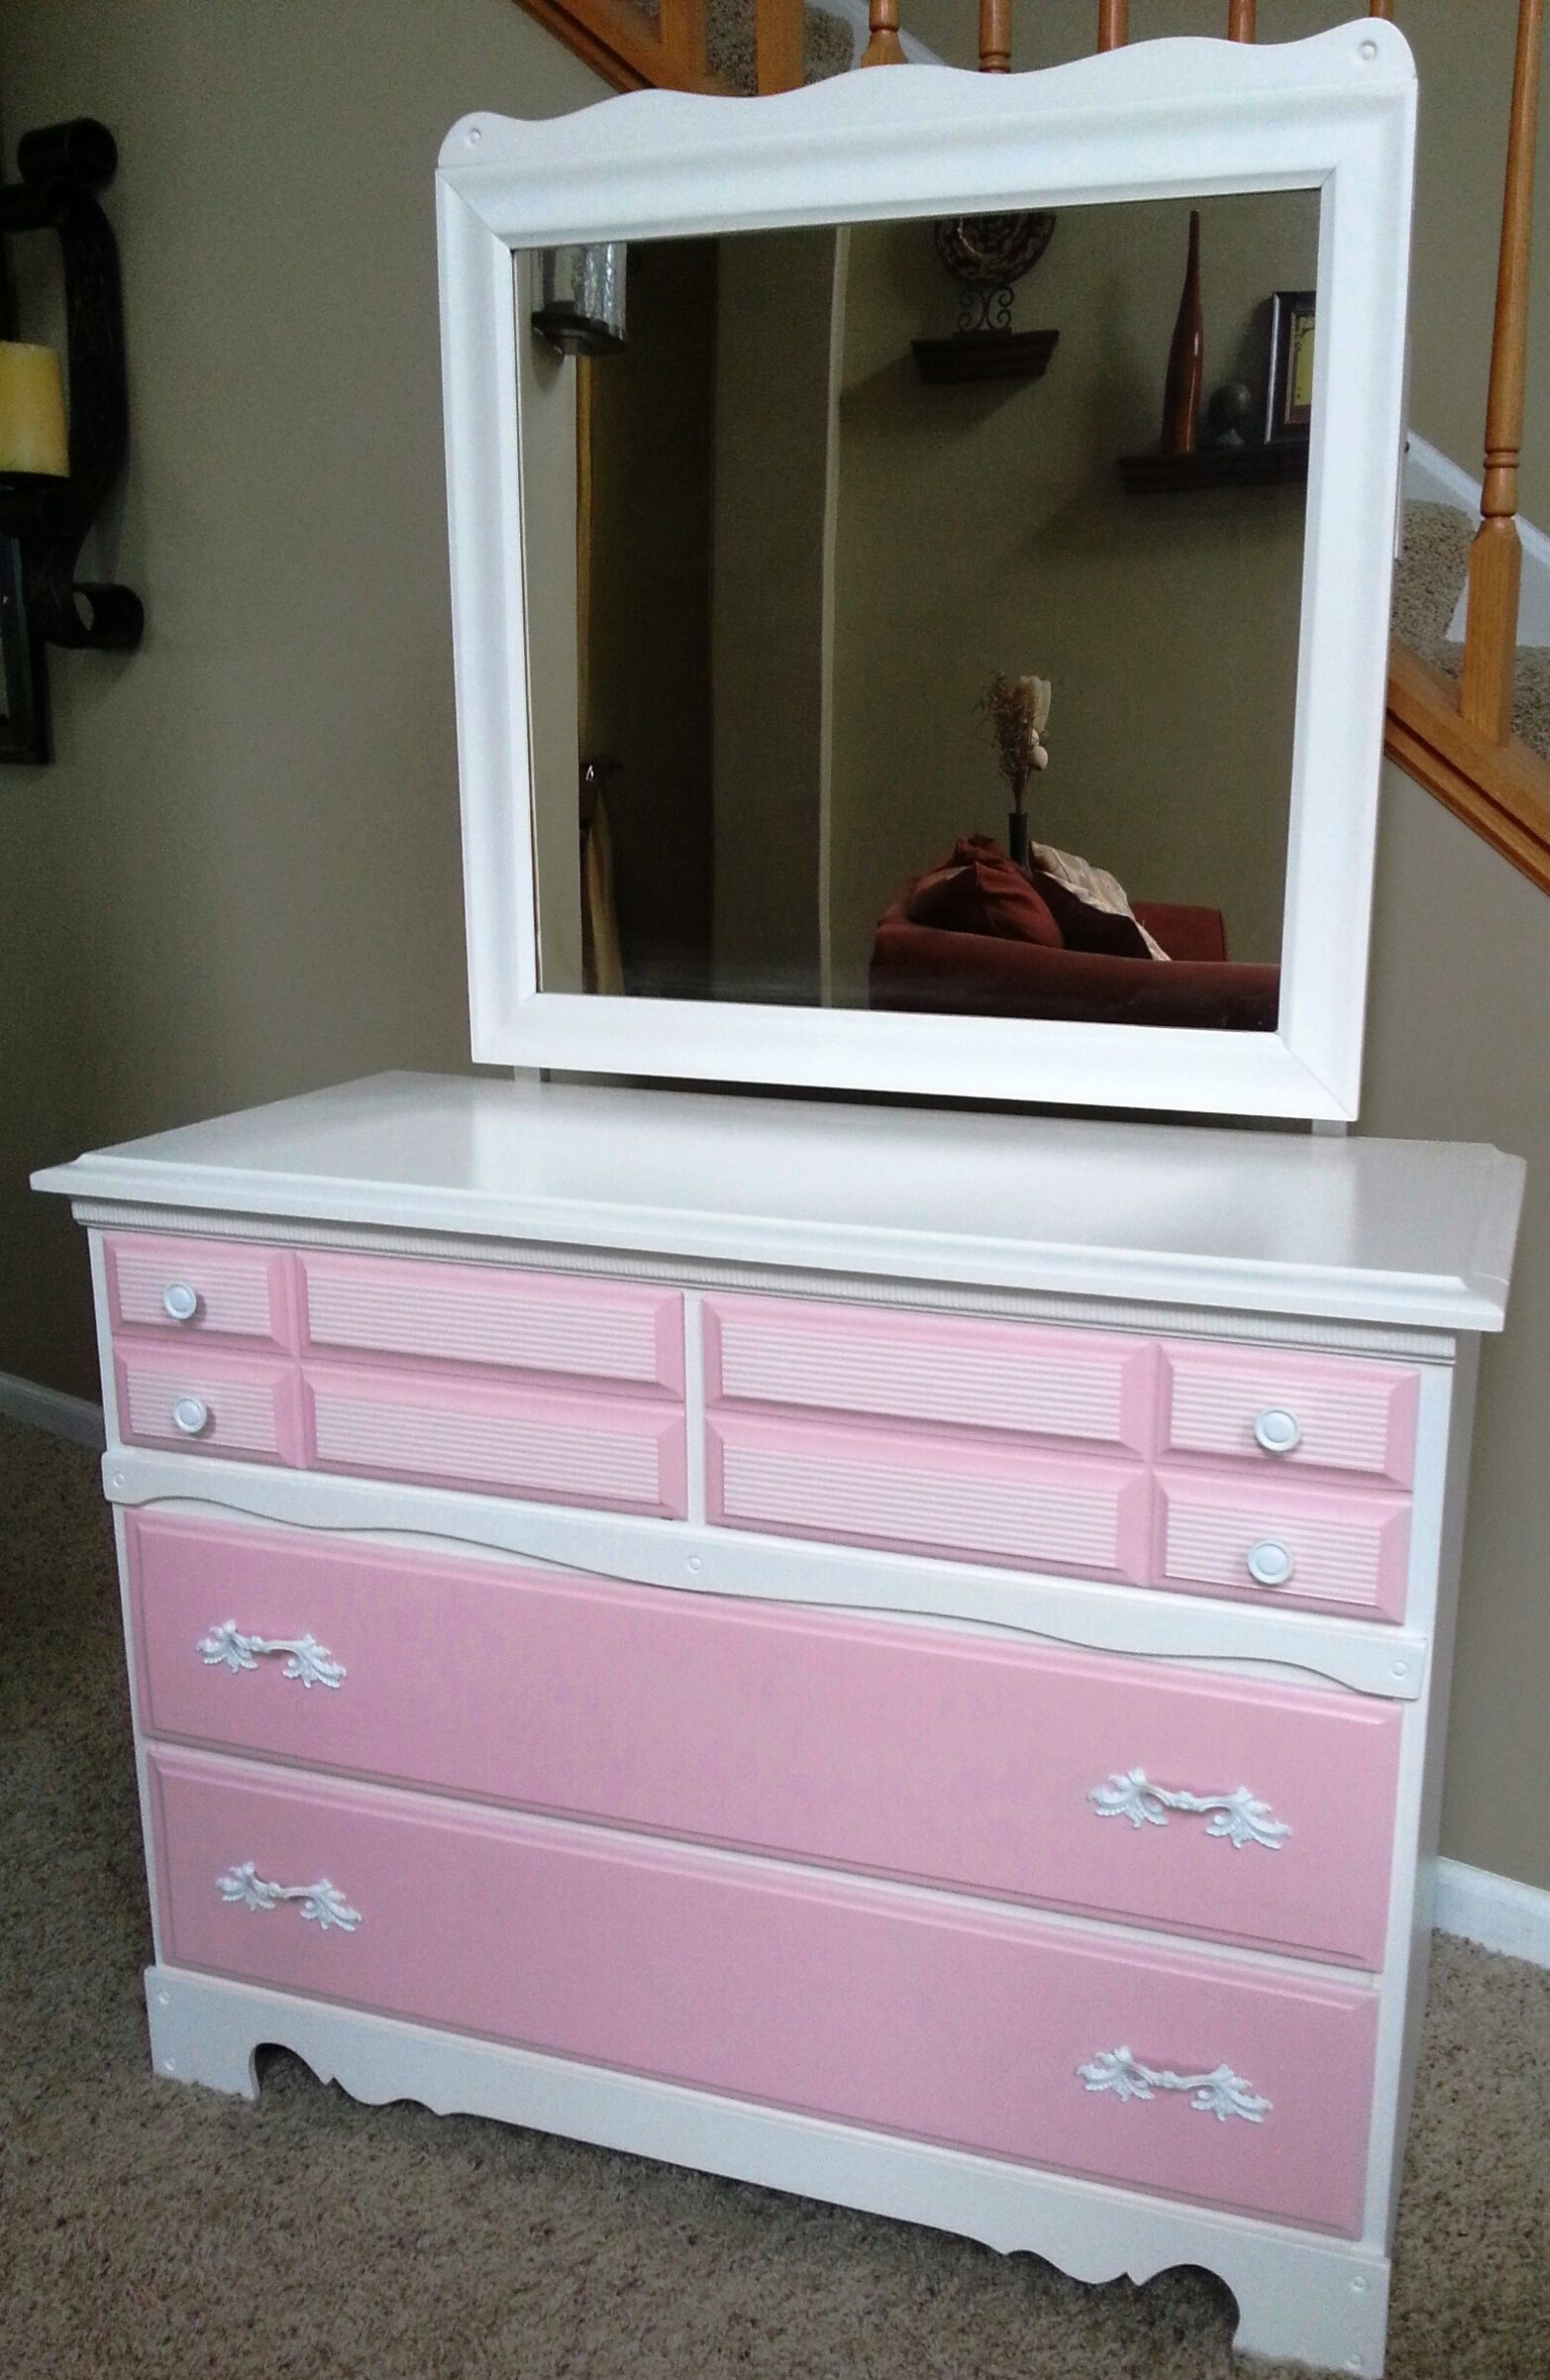 Refurbished Dresser Little Girl S Pink And White Dresser With